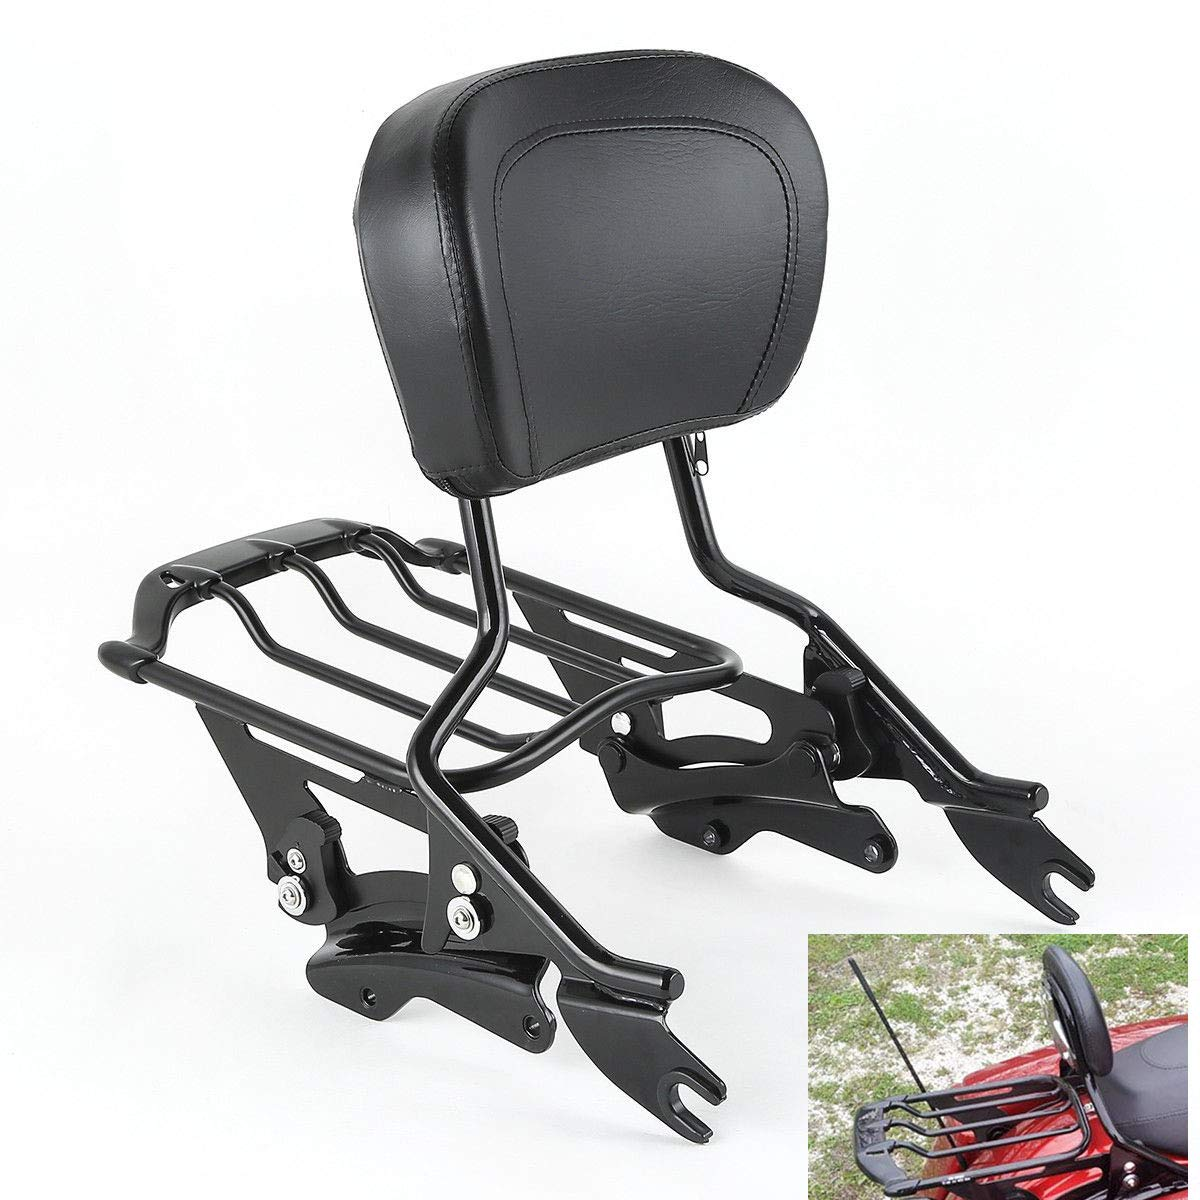 Chrome, Style D TCMT Detachable Passenger Backrest Sissy Bar With 2 Up Air Wing Luggage Rack 4 Point Docking Hardware Kits Fits For Harley Touring 2014-2019